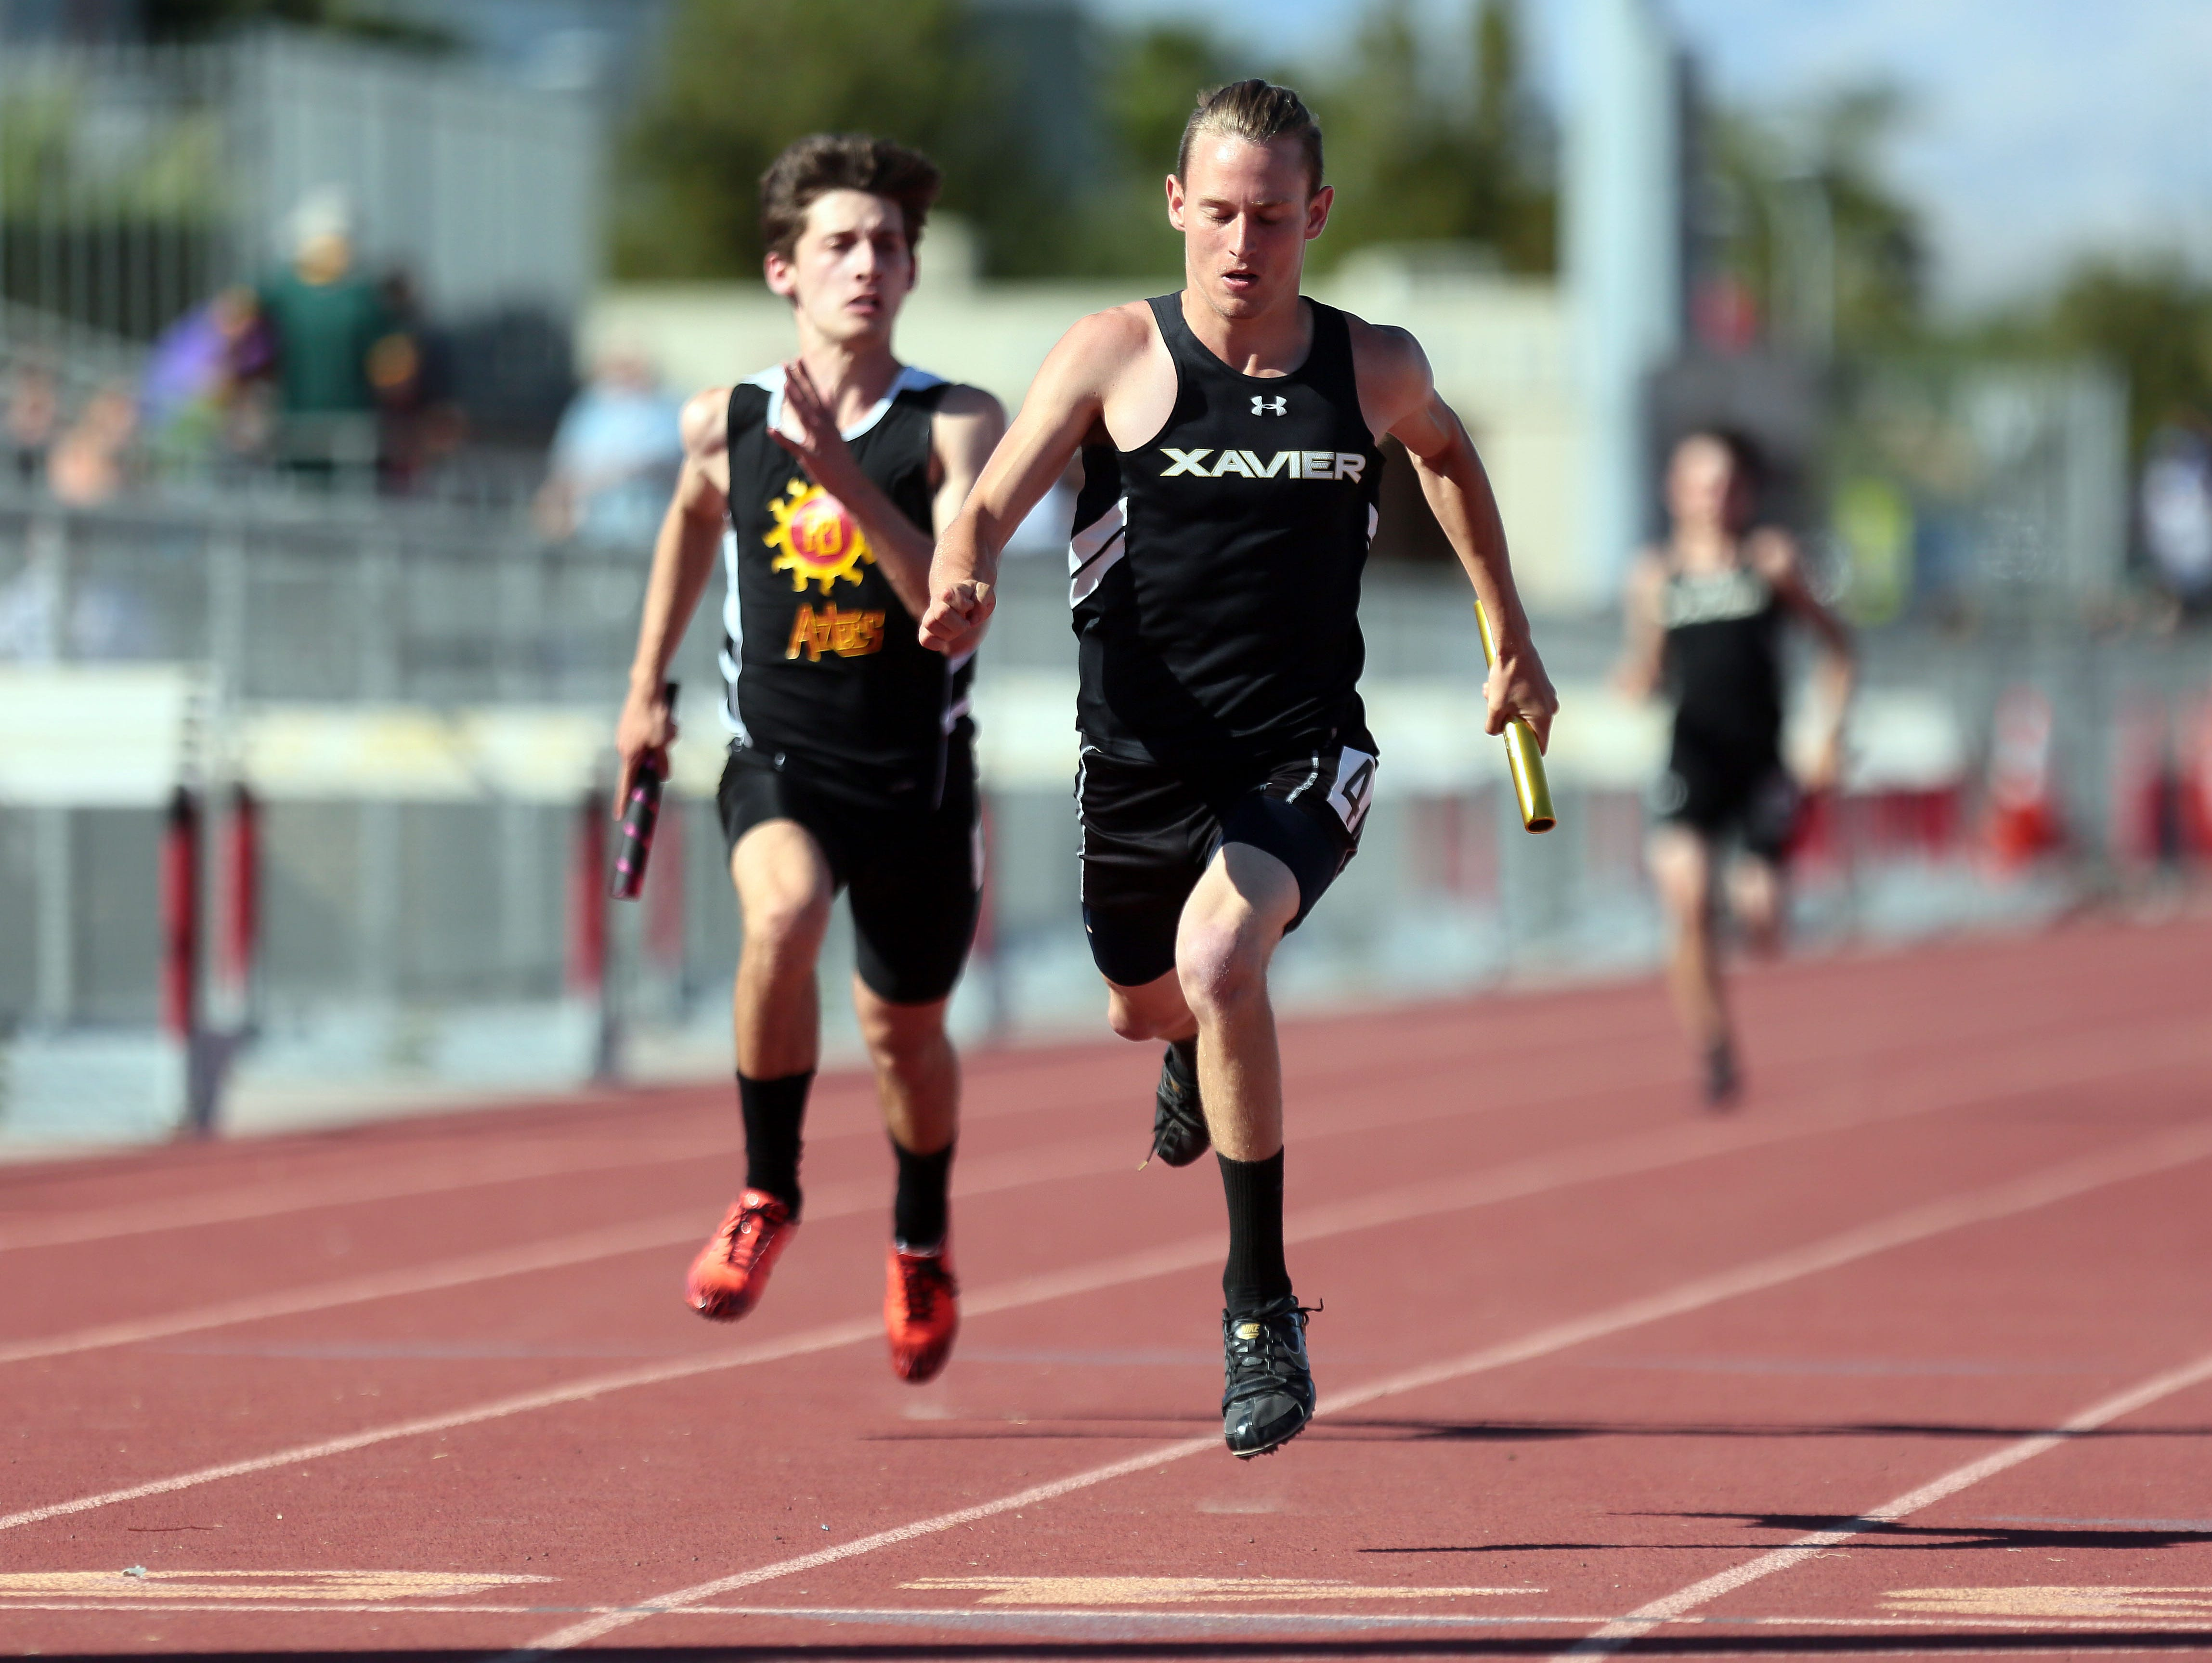 Xavier's Chris McElrath beats out Palm Desert's Spencer Platamore to win for his relay team during a track meet at Palm Desert High on Thursday, March 24, 2016